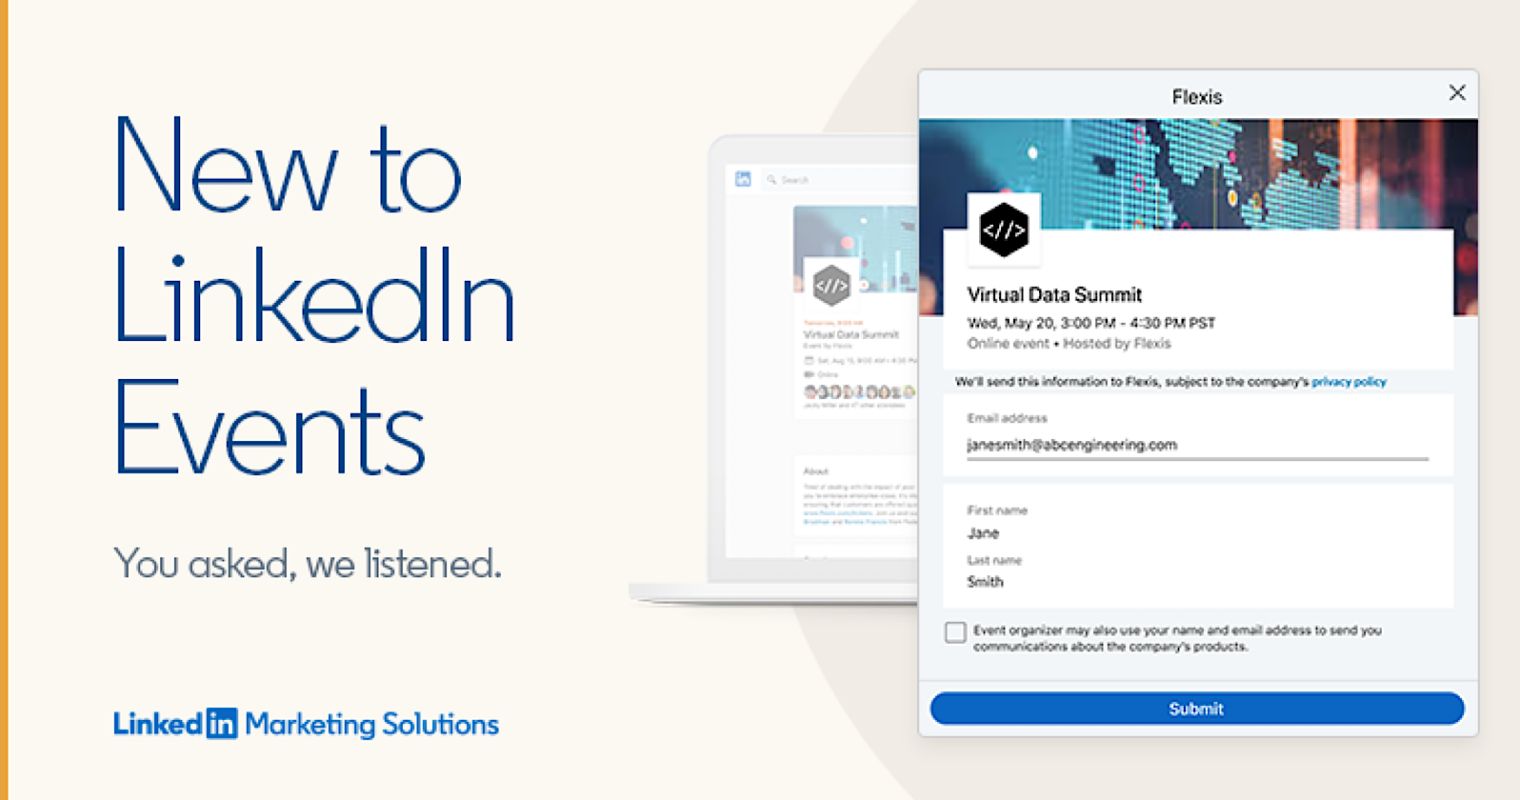 LinkedIn Makes Virtual Events Easier to Find